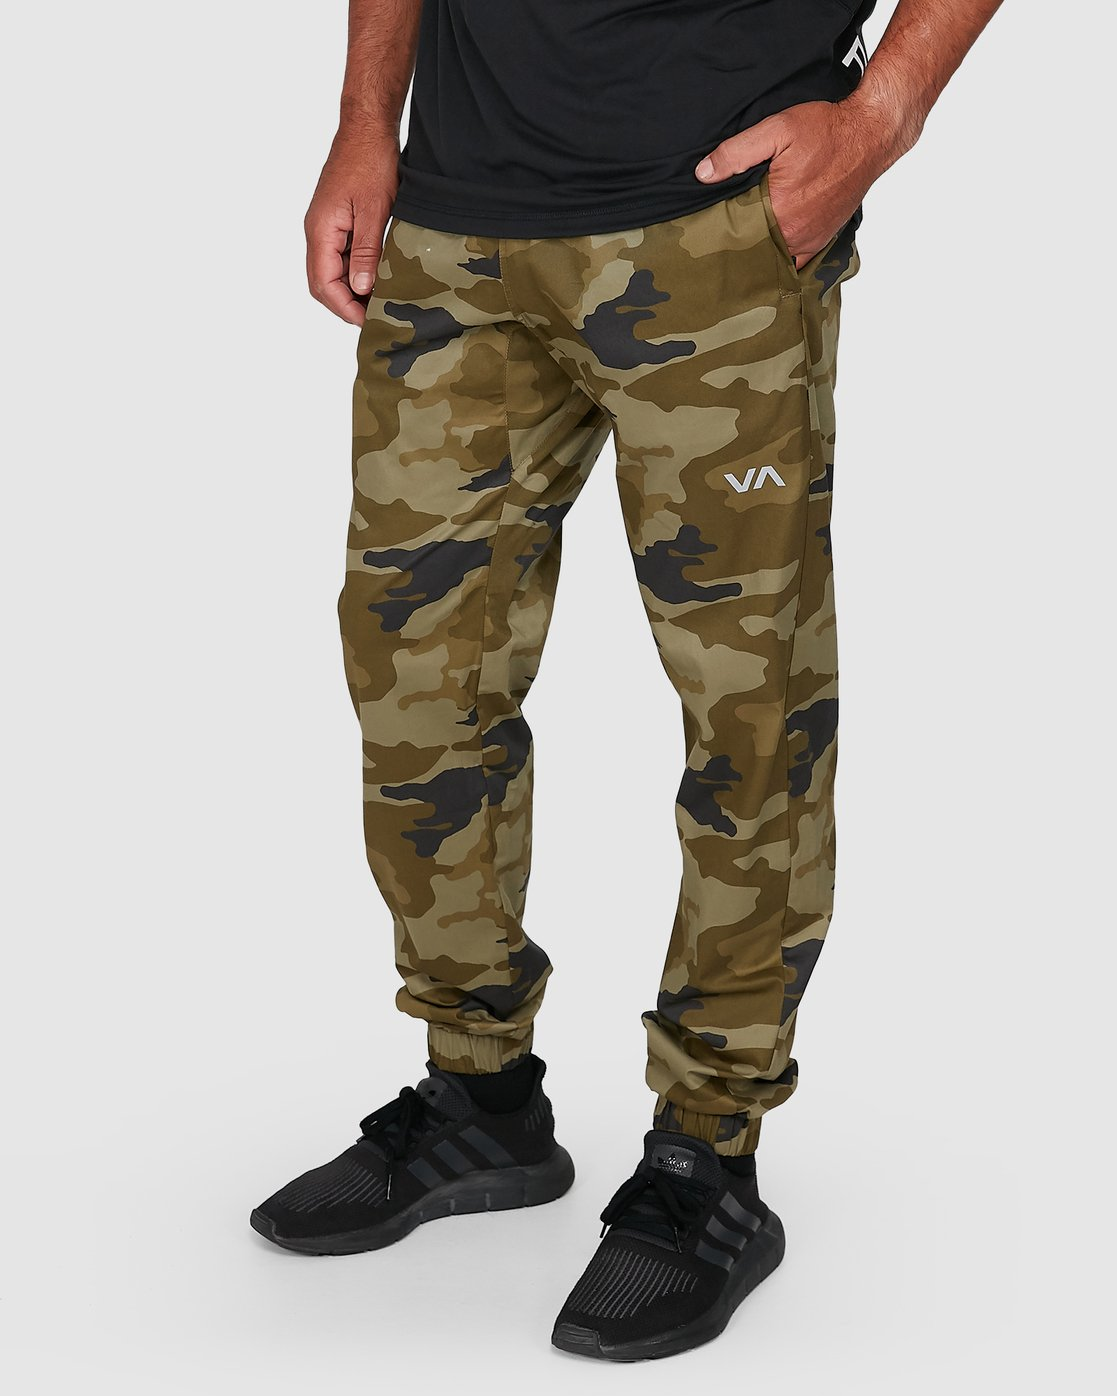 6 SPECTRUM CUFFED PANTS Green R307276 RVCA